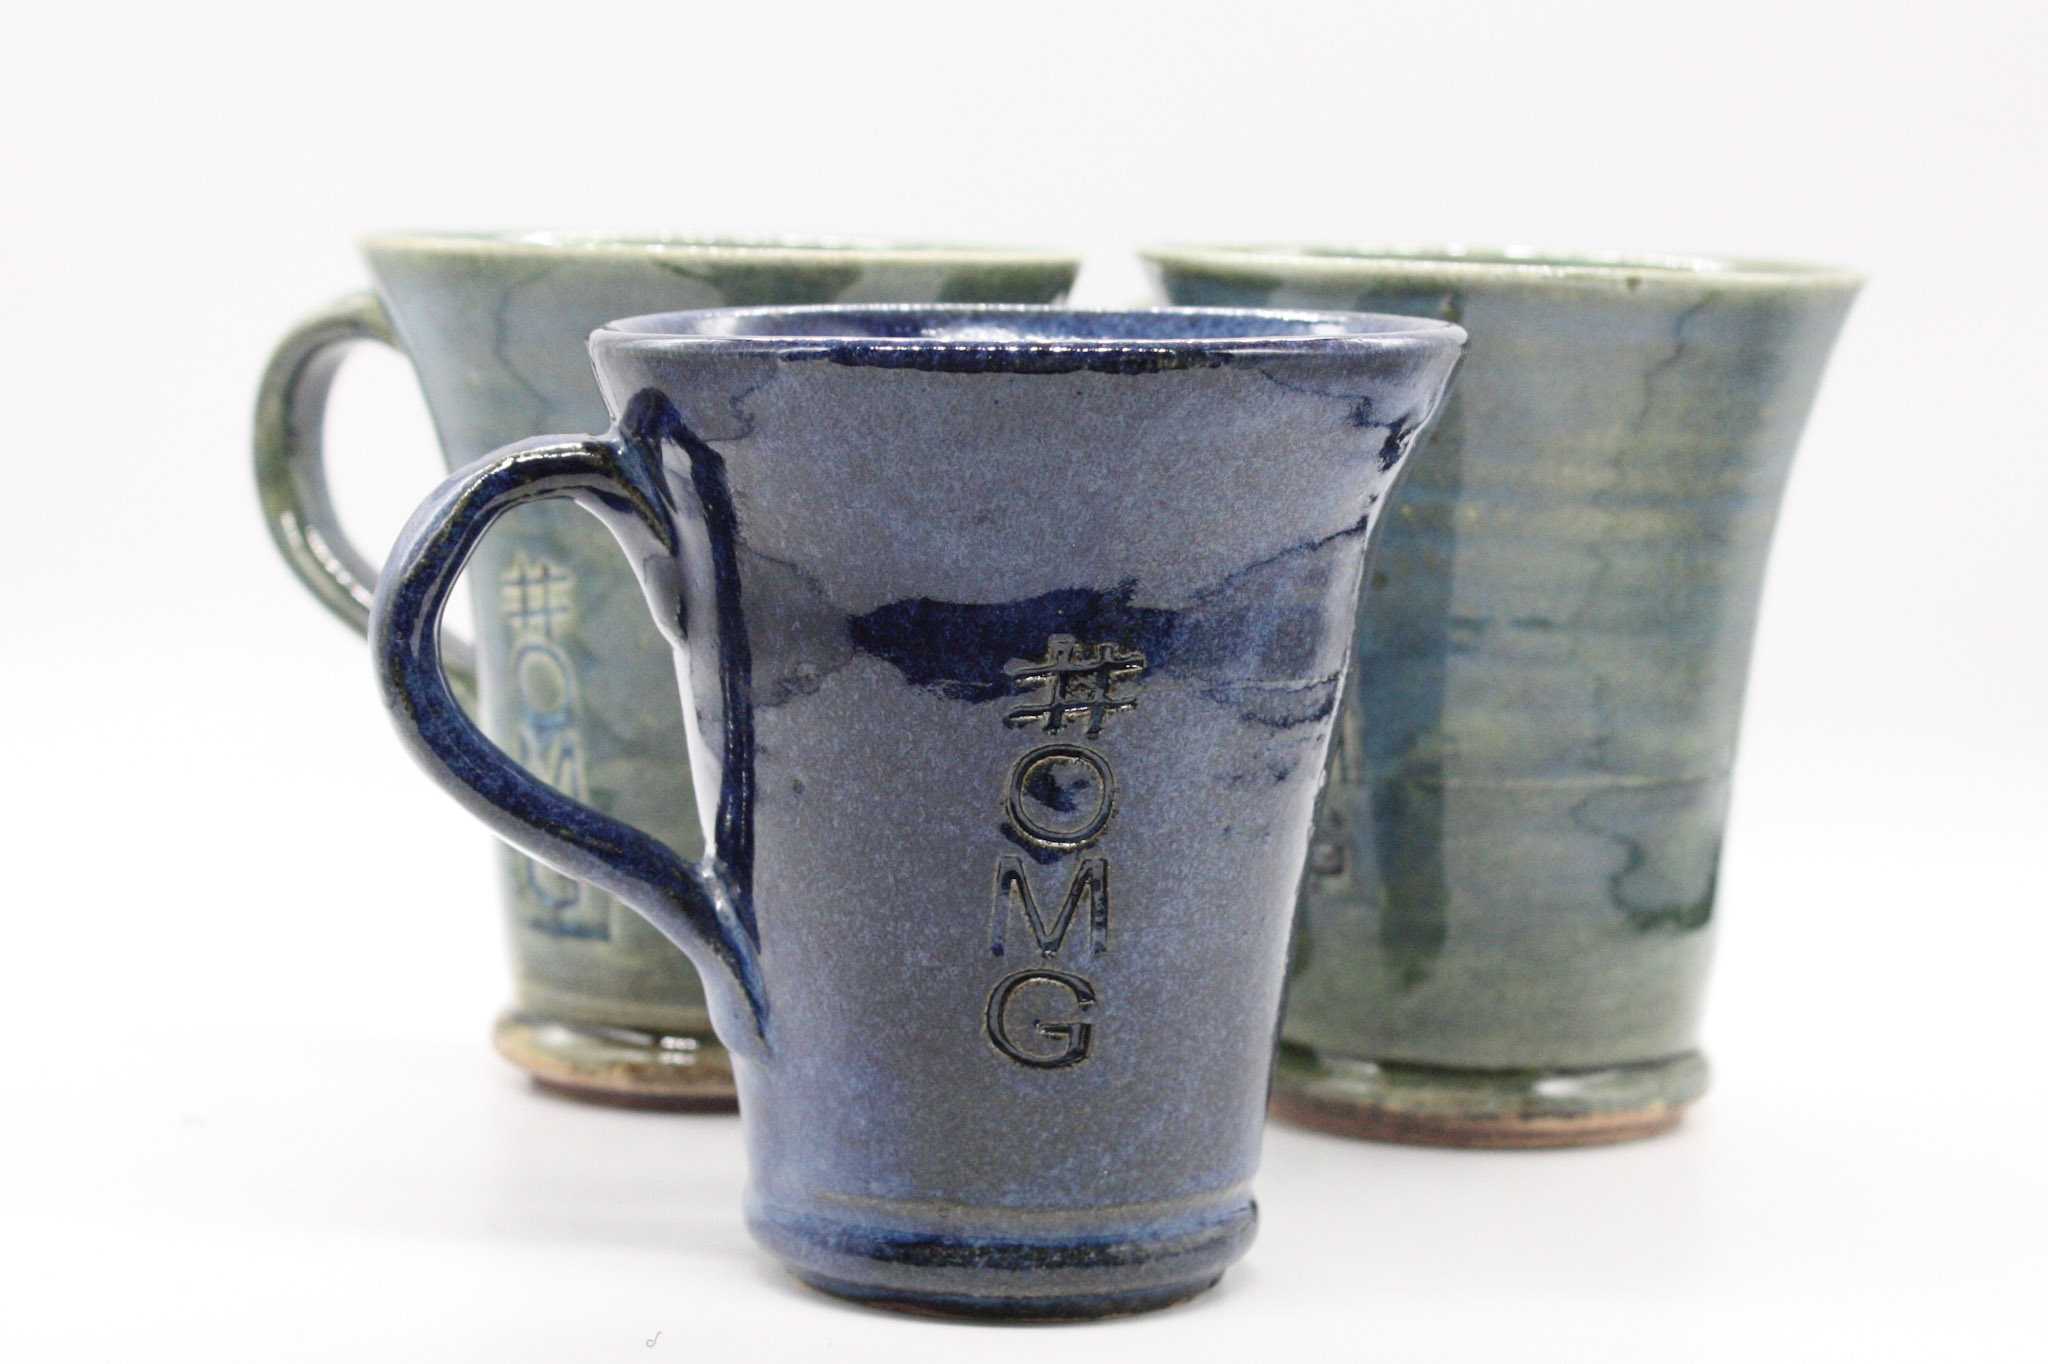 Peter White OMG Mugs Woburn Sands Clay The Great Pottery Throw Down